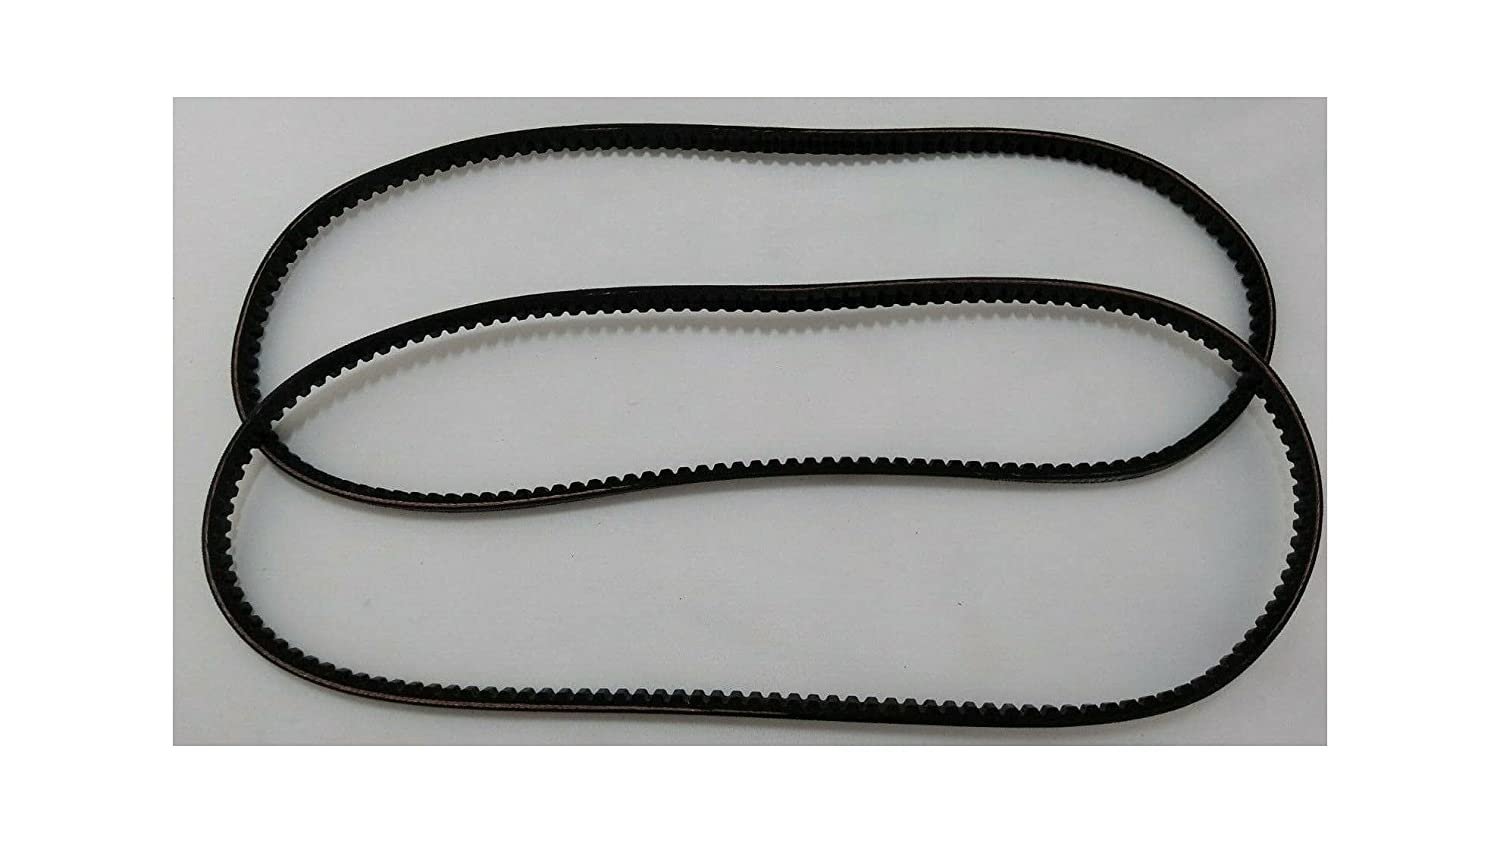 New TToro Our shop 5% OFF OFFers the best service REPL 94-8812 Belt and Brooms for SNOWTHR Rotaryy